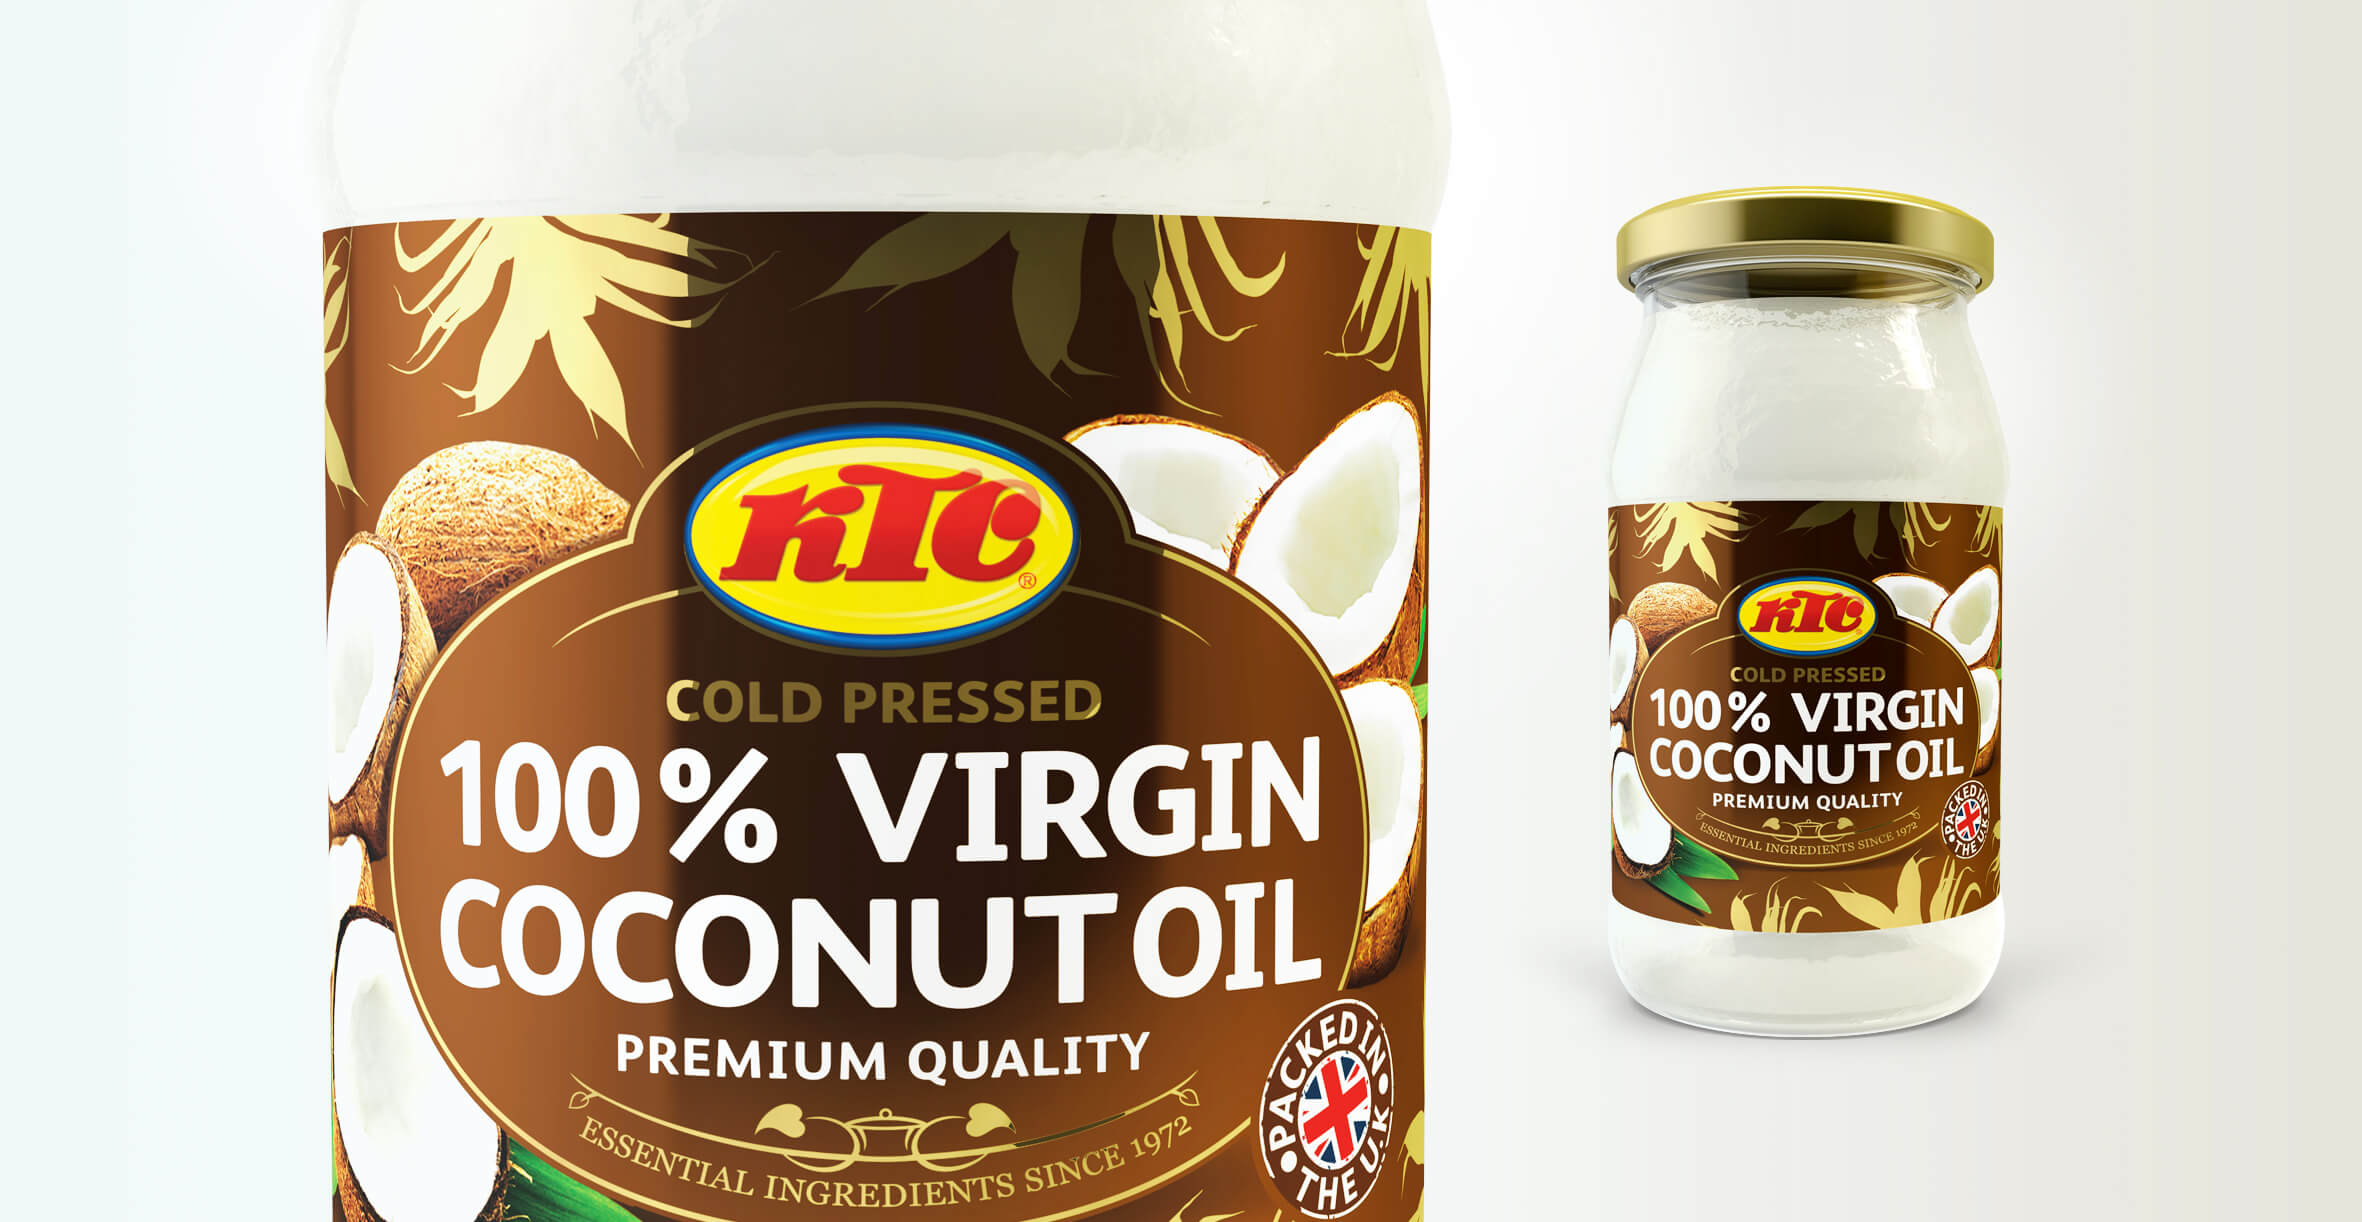 Packaging Design and Logo Refresh for Food Brand KTC Edibles - Coconut Oil Packaging Design